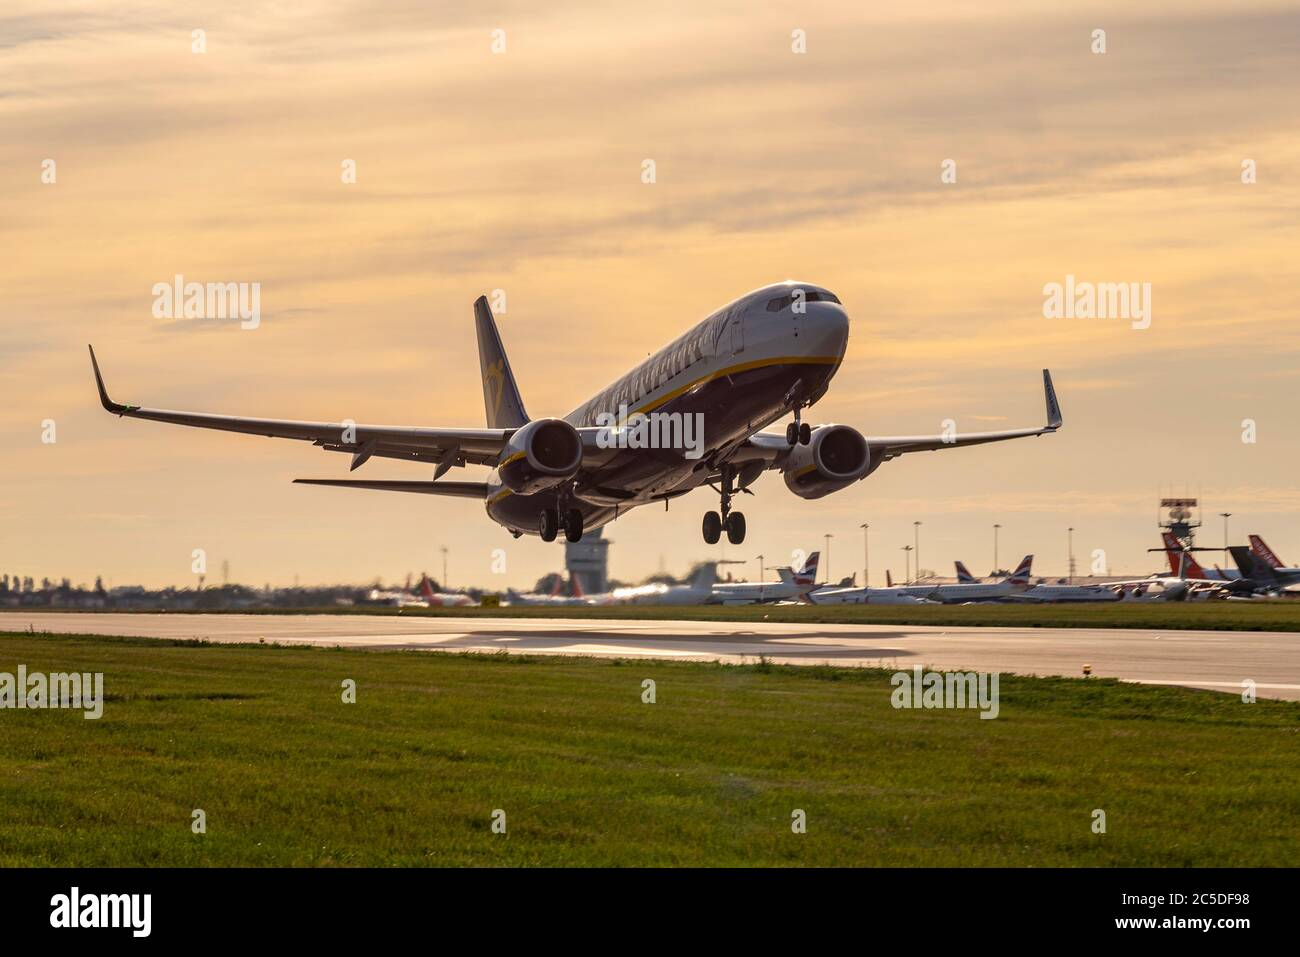 ryanair-airline-have-resumed-routes-to-spain-following-the-covid-19-coronavirus-lockdown-boeing-737-taking-off-from-southend-airport-to-2C5DF98.jpg